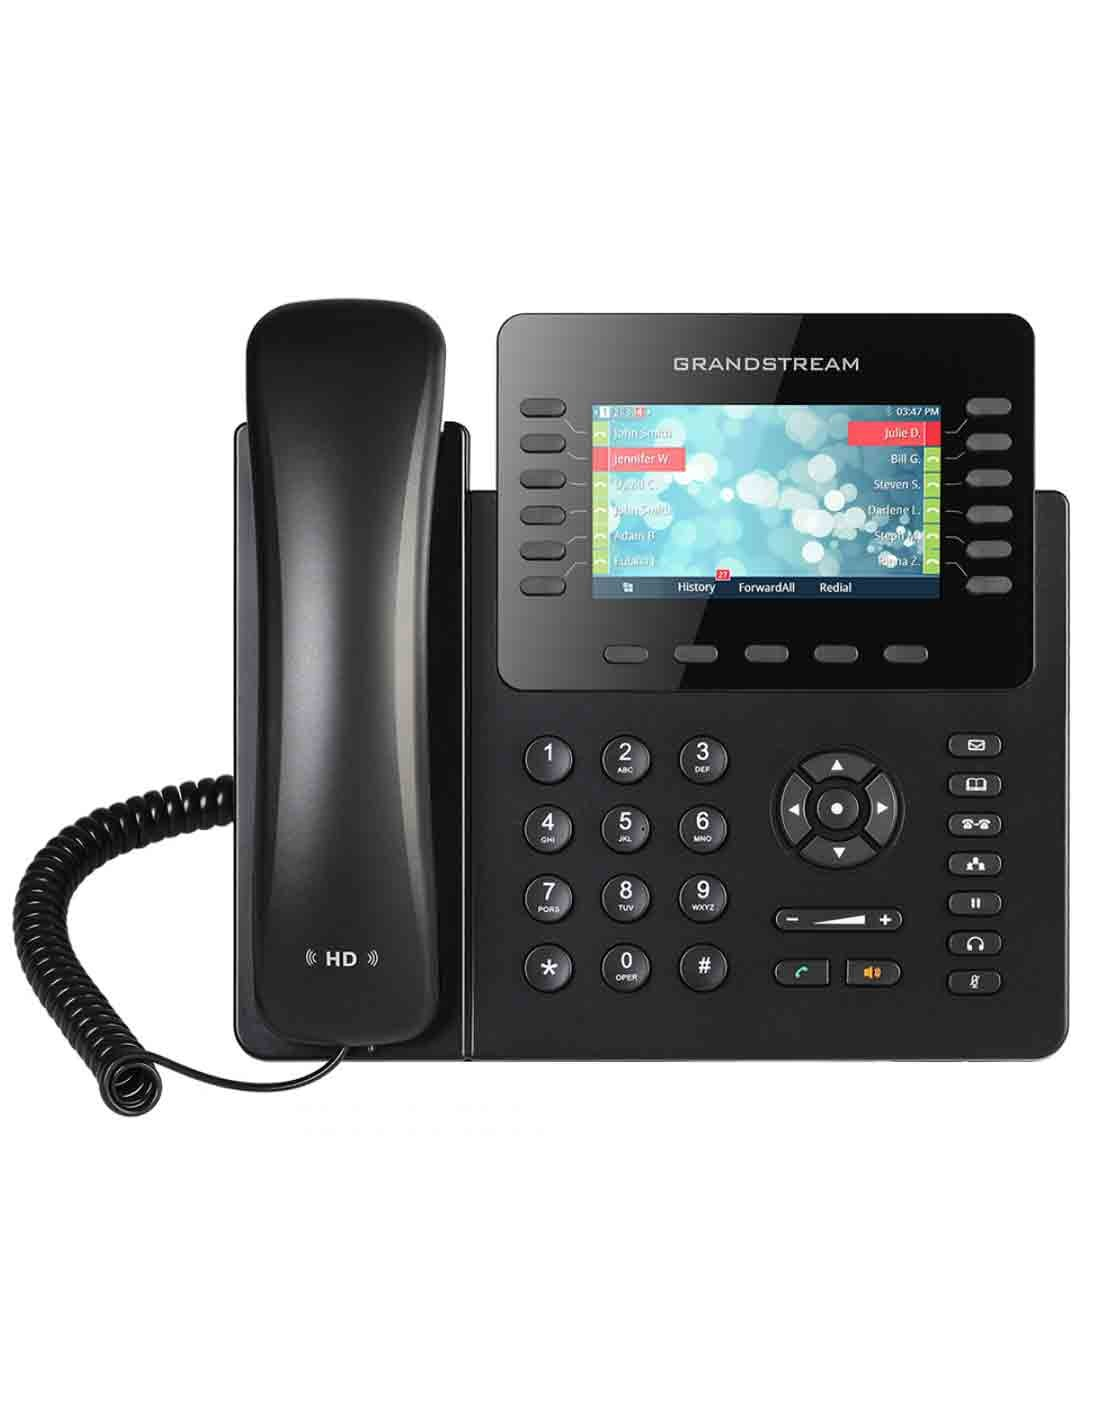 Grandstream GXP2170 High-End IP Phone at a cheap price and free delivery in Dubai